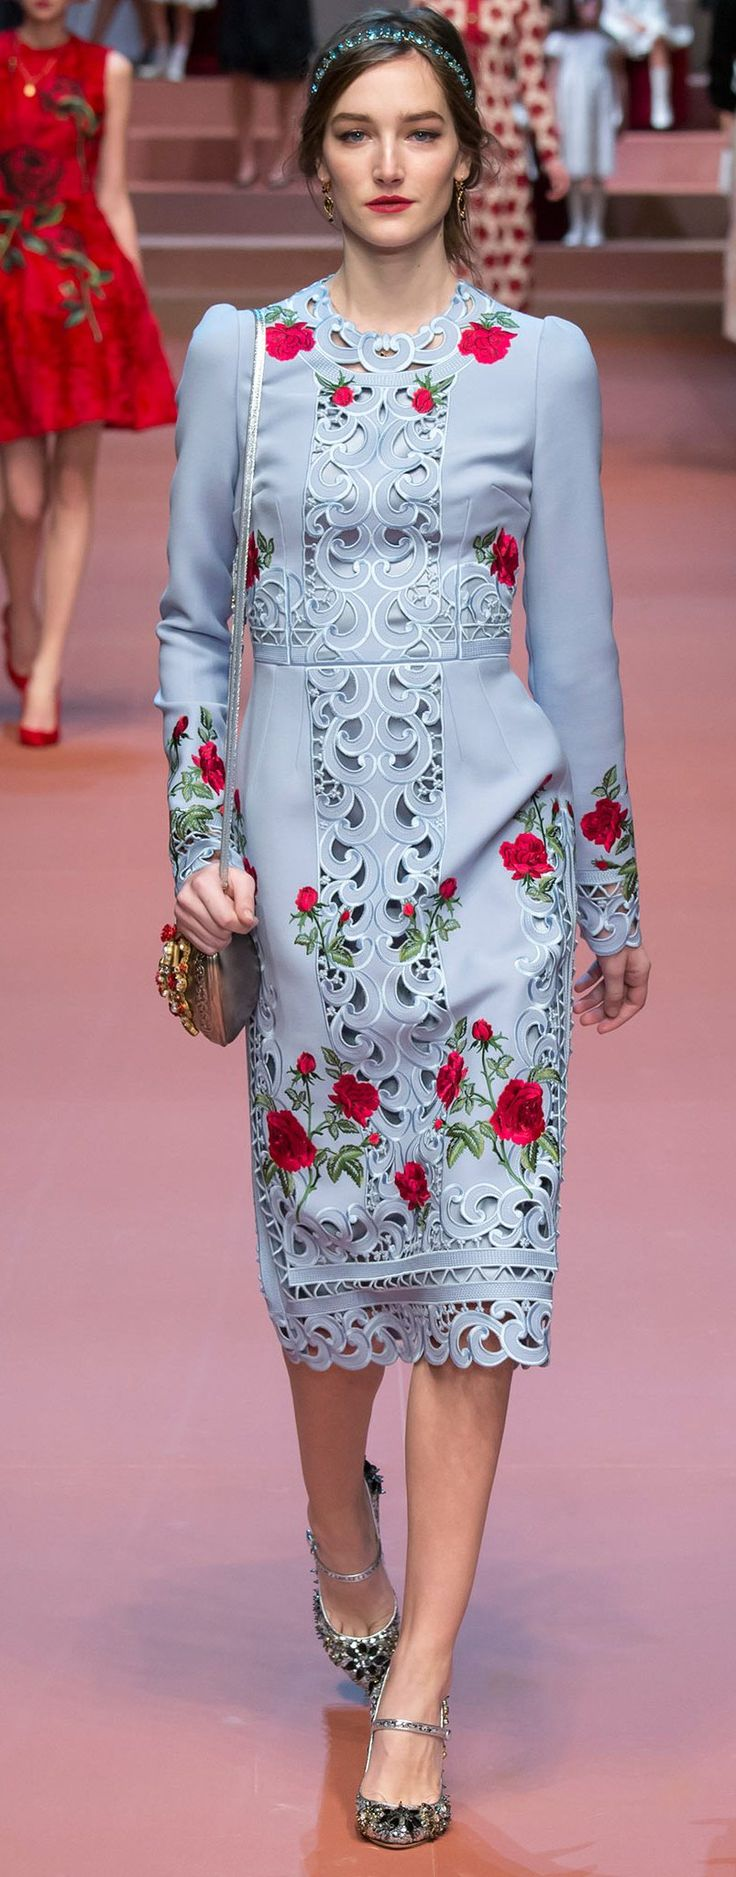 Dolce & Gabbana Autumn Fall Winter 2015-16